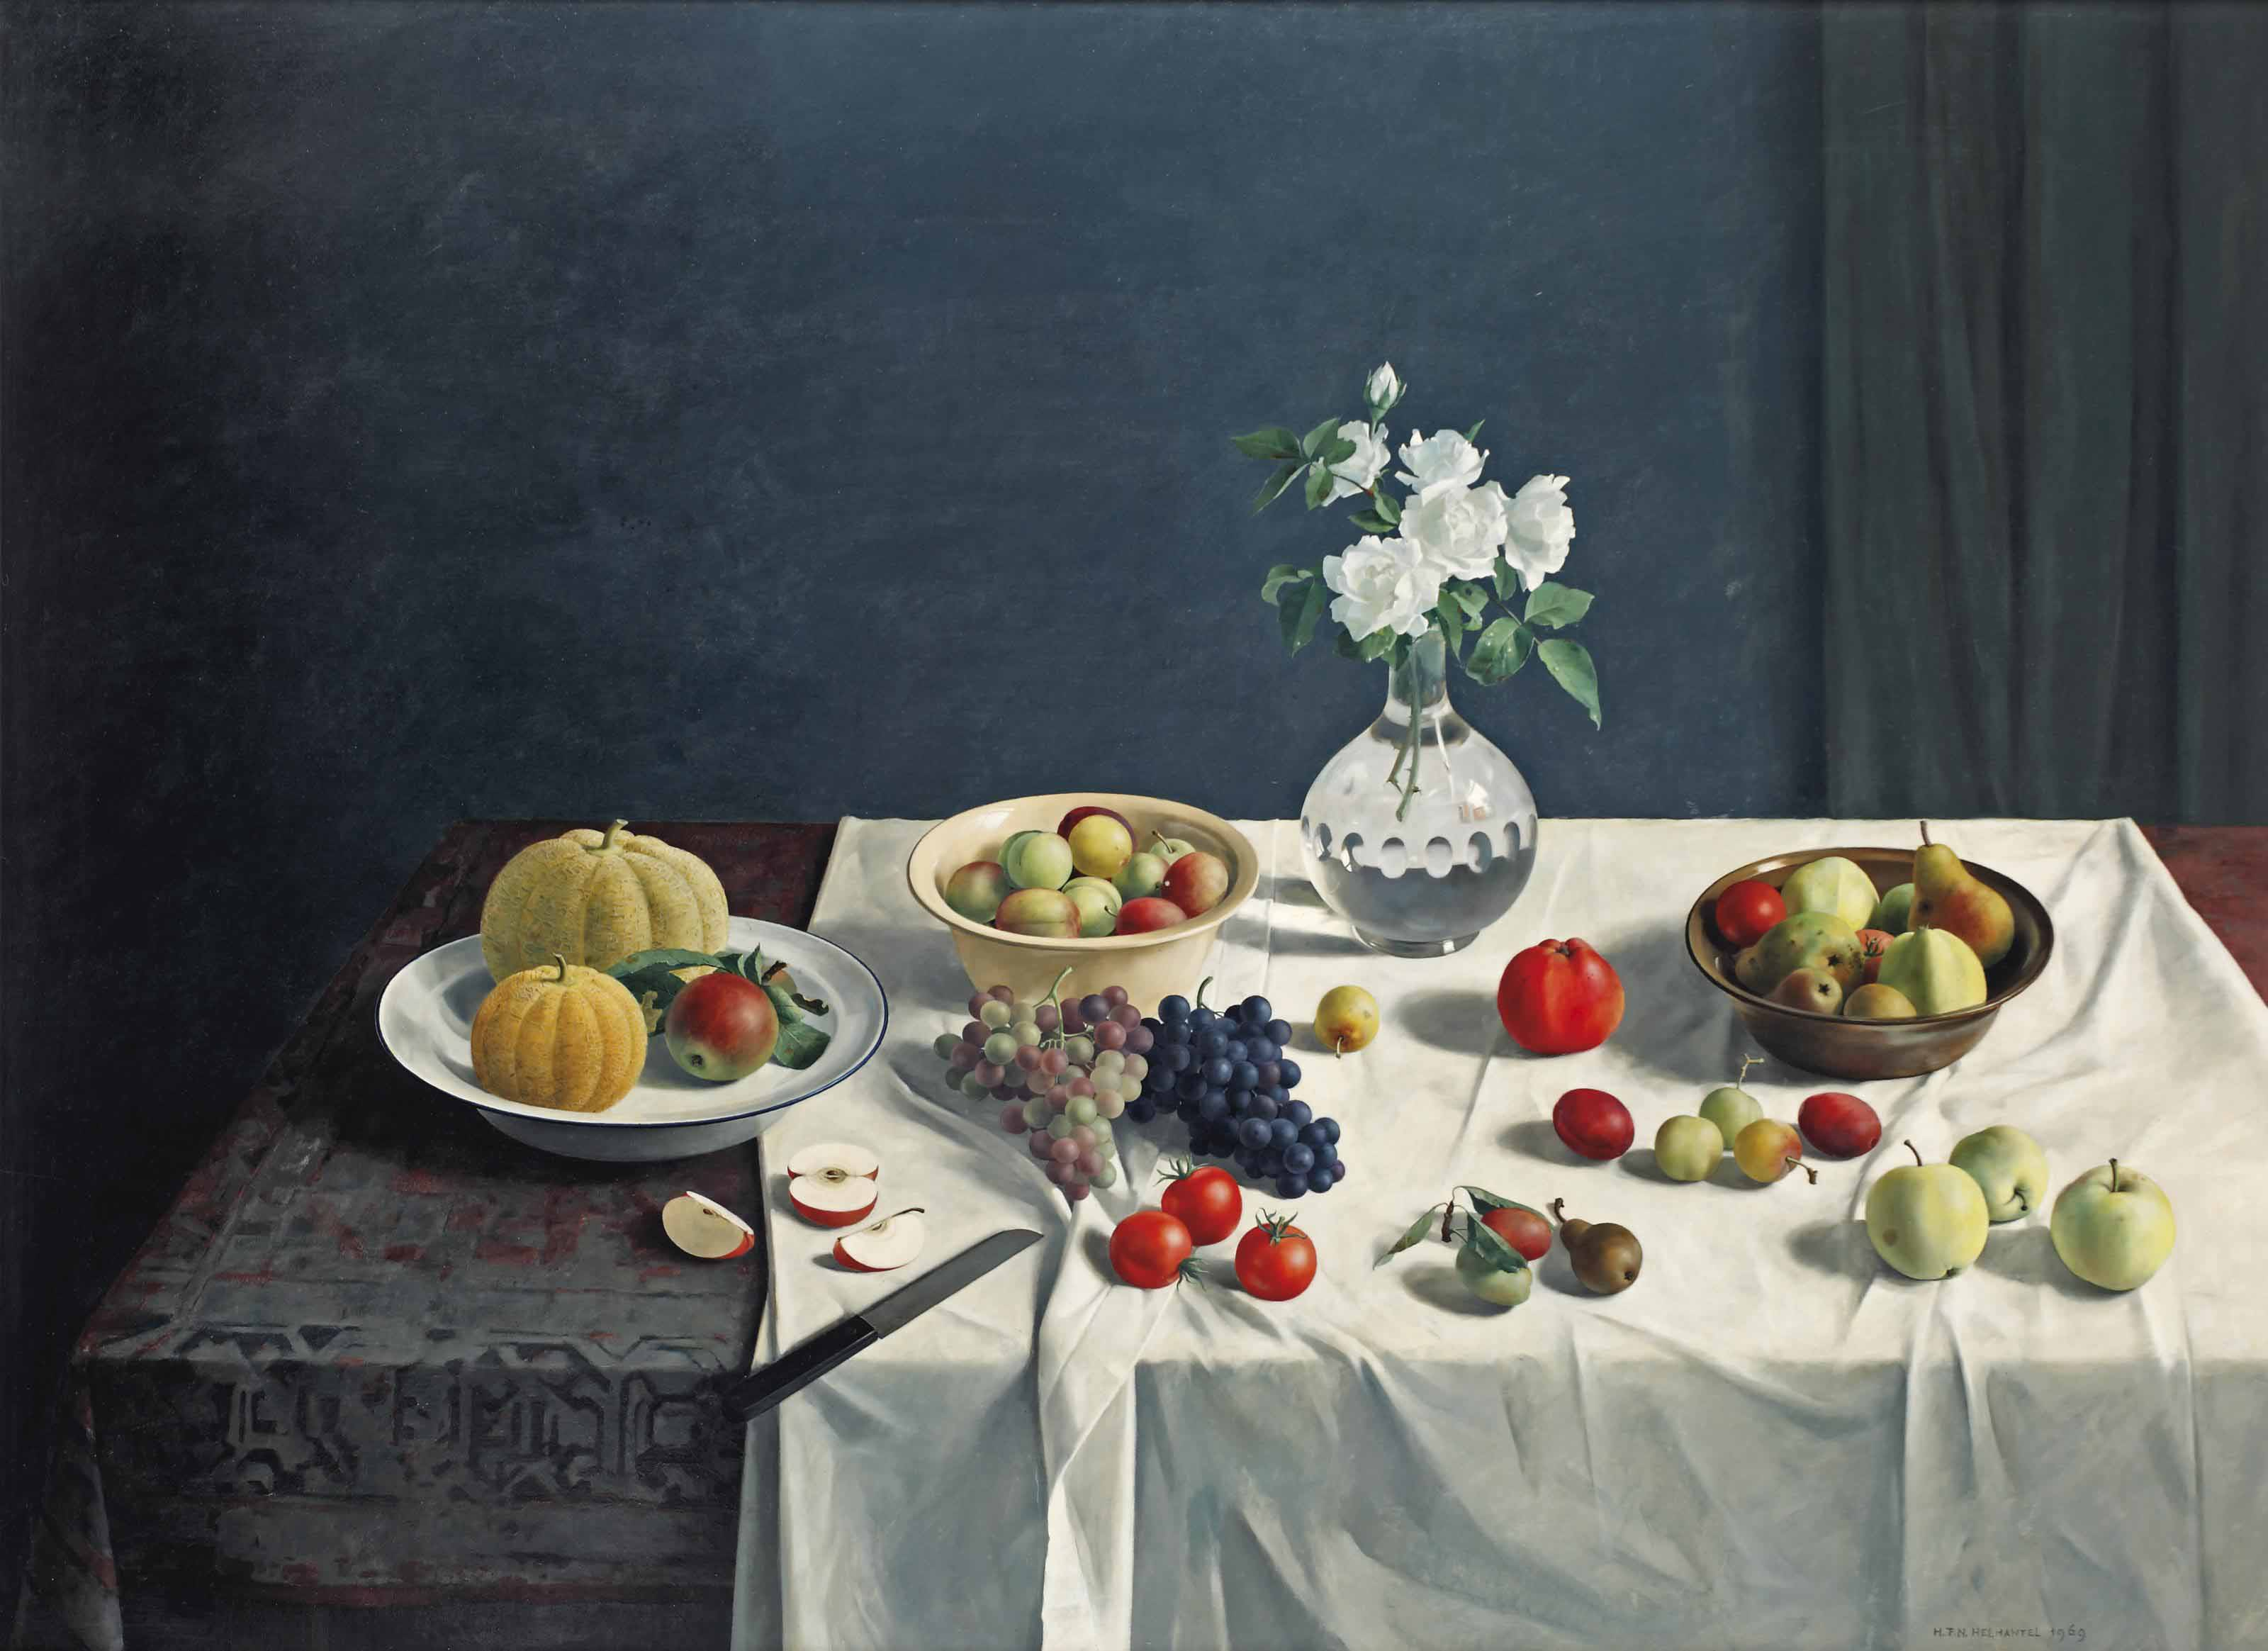 A still life with fruits and flowers